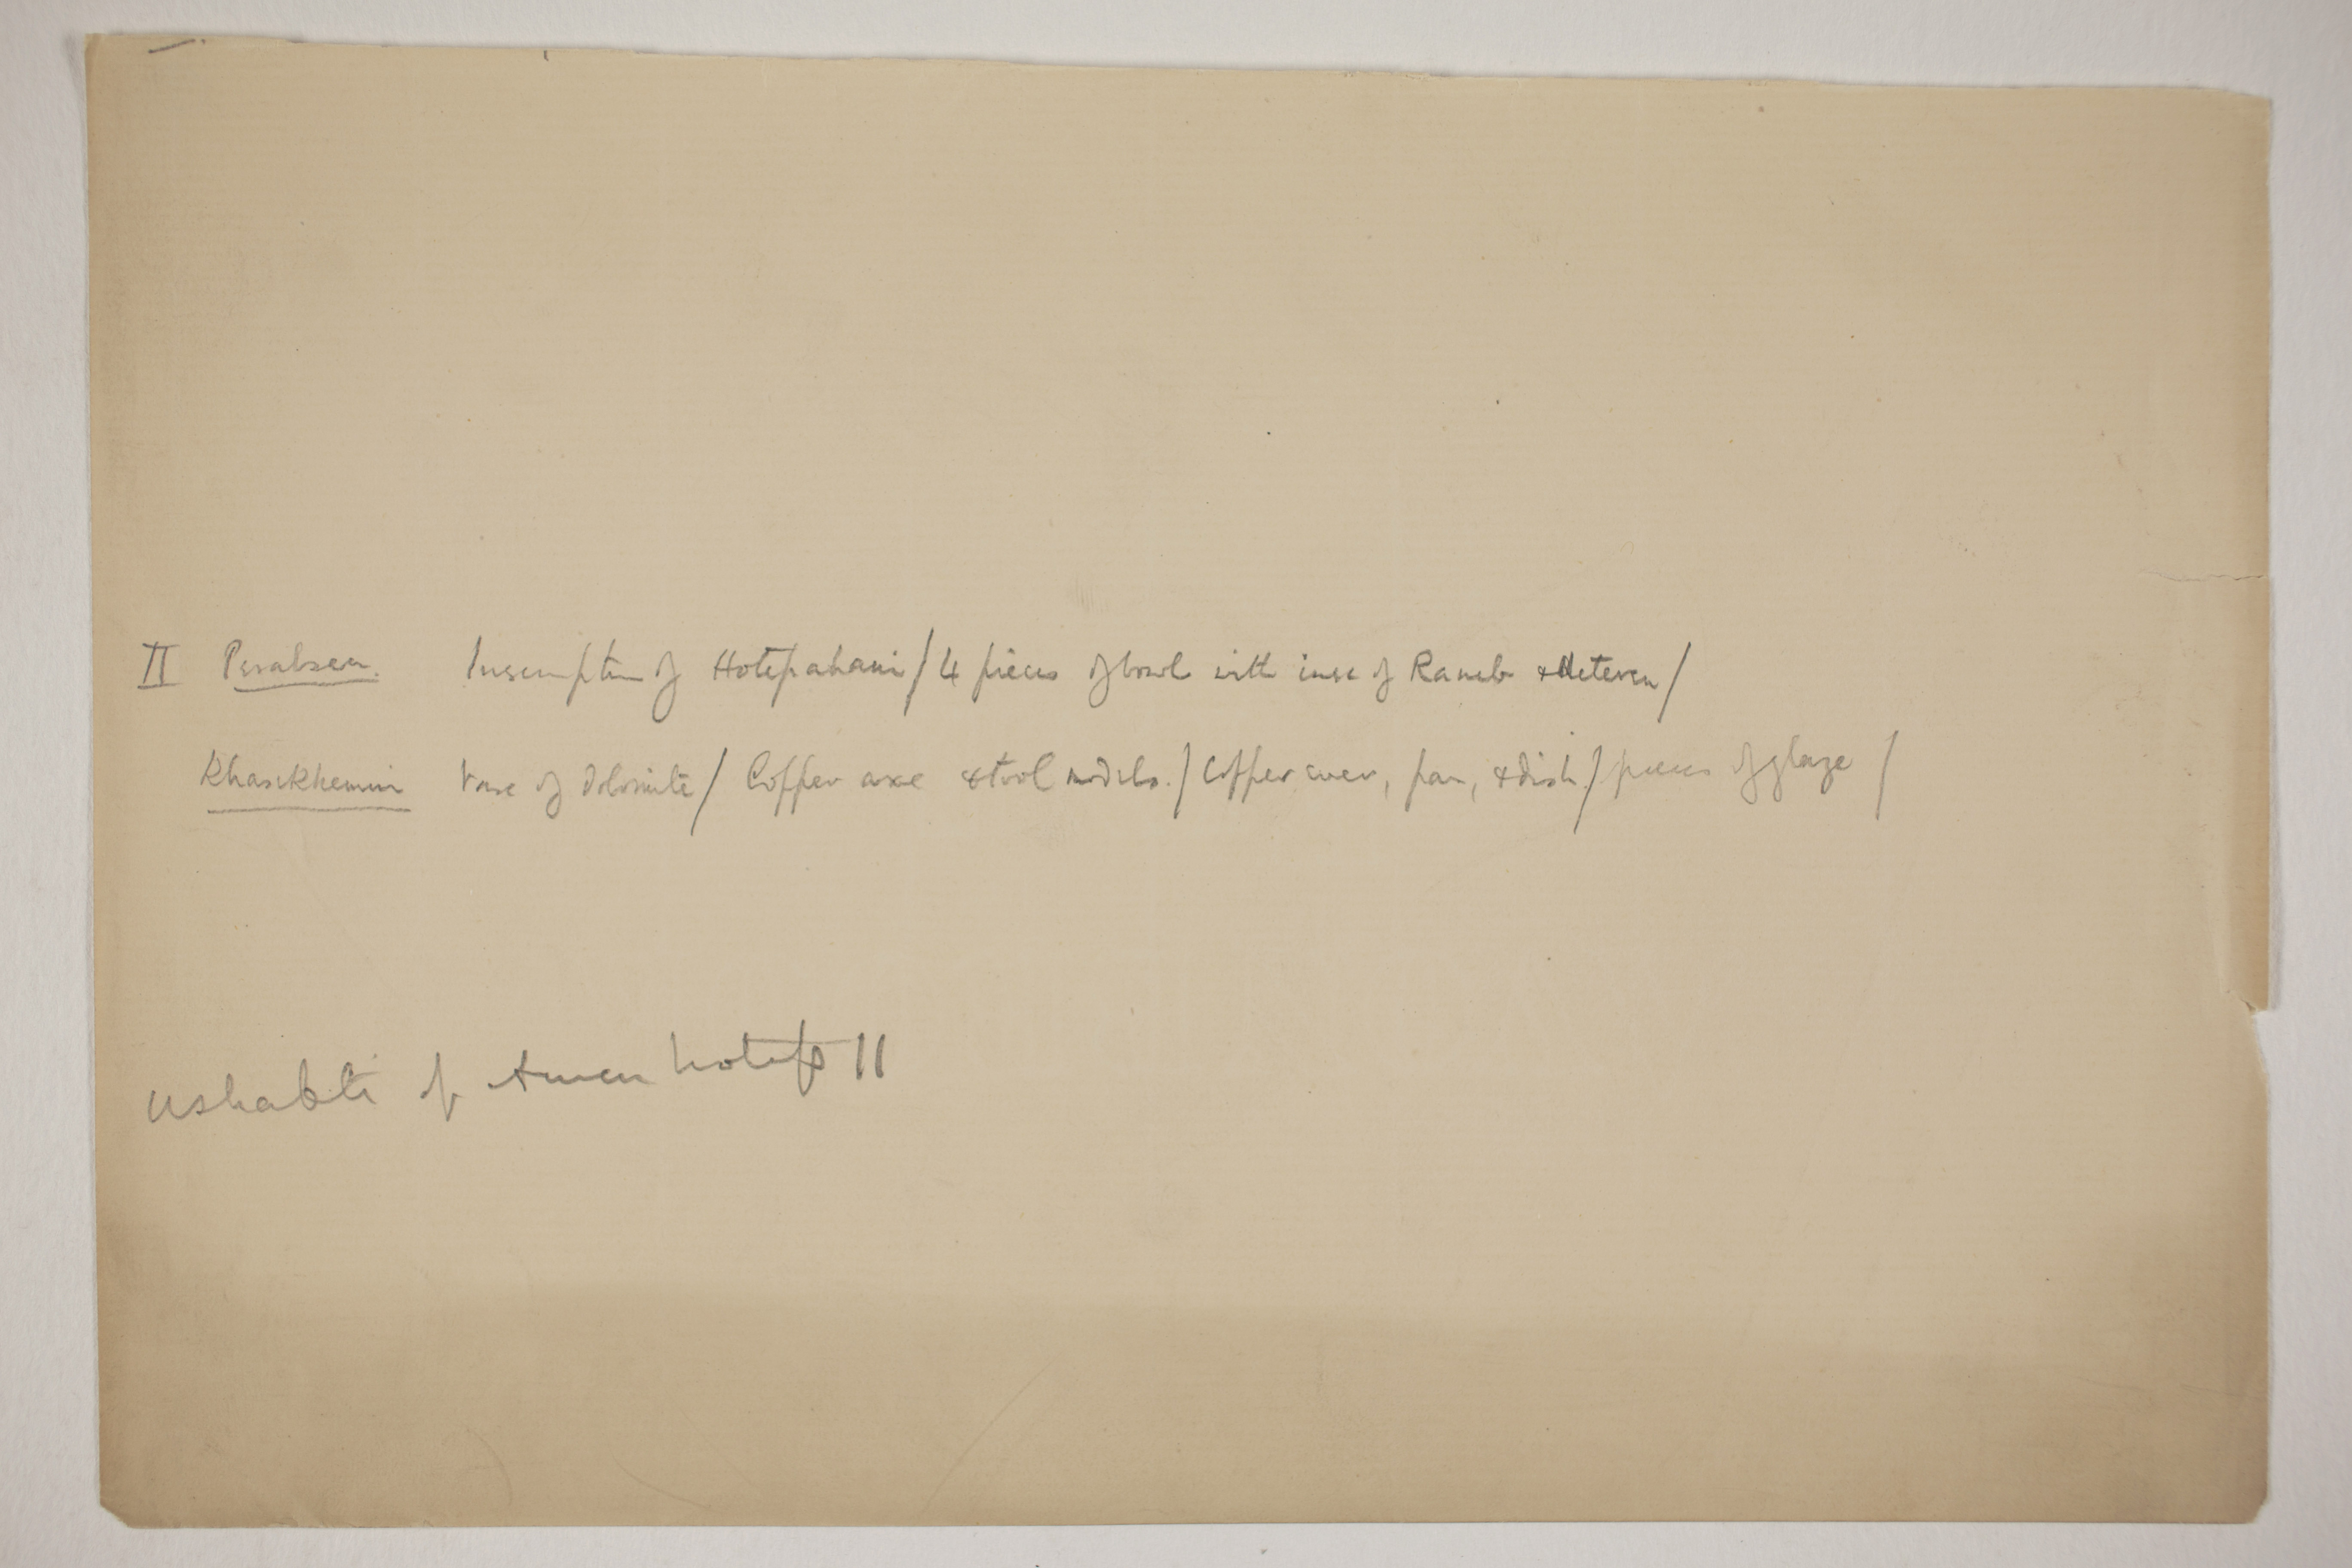 1900-01 Abydos, Bet Khallaf, el-Mahasna Individual institution list  PMA/WFP1/D/9/19.2